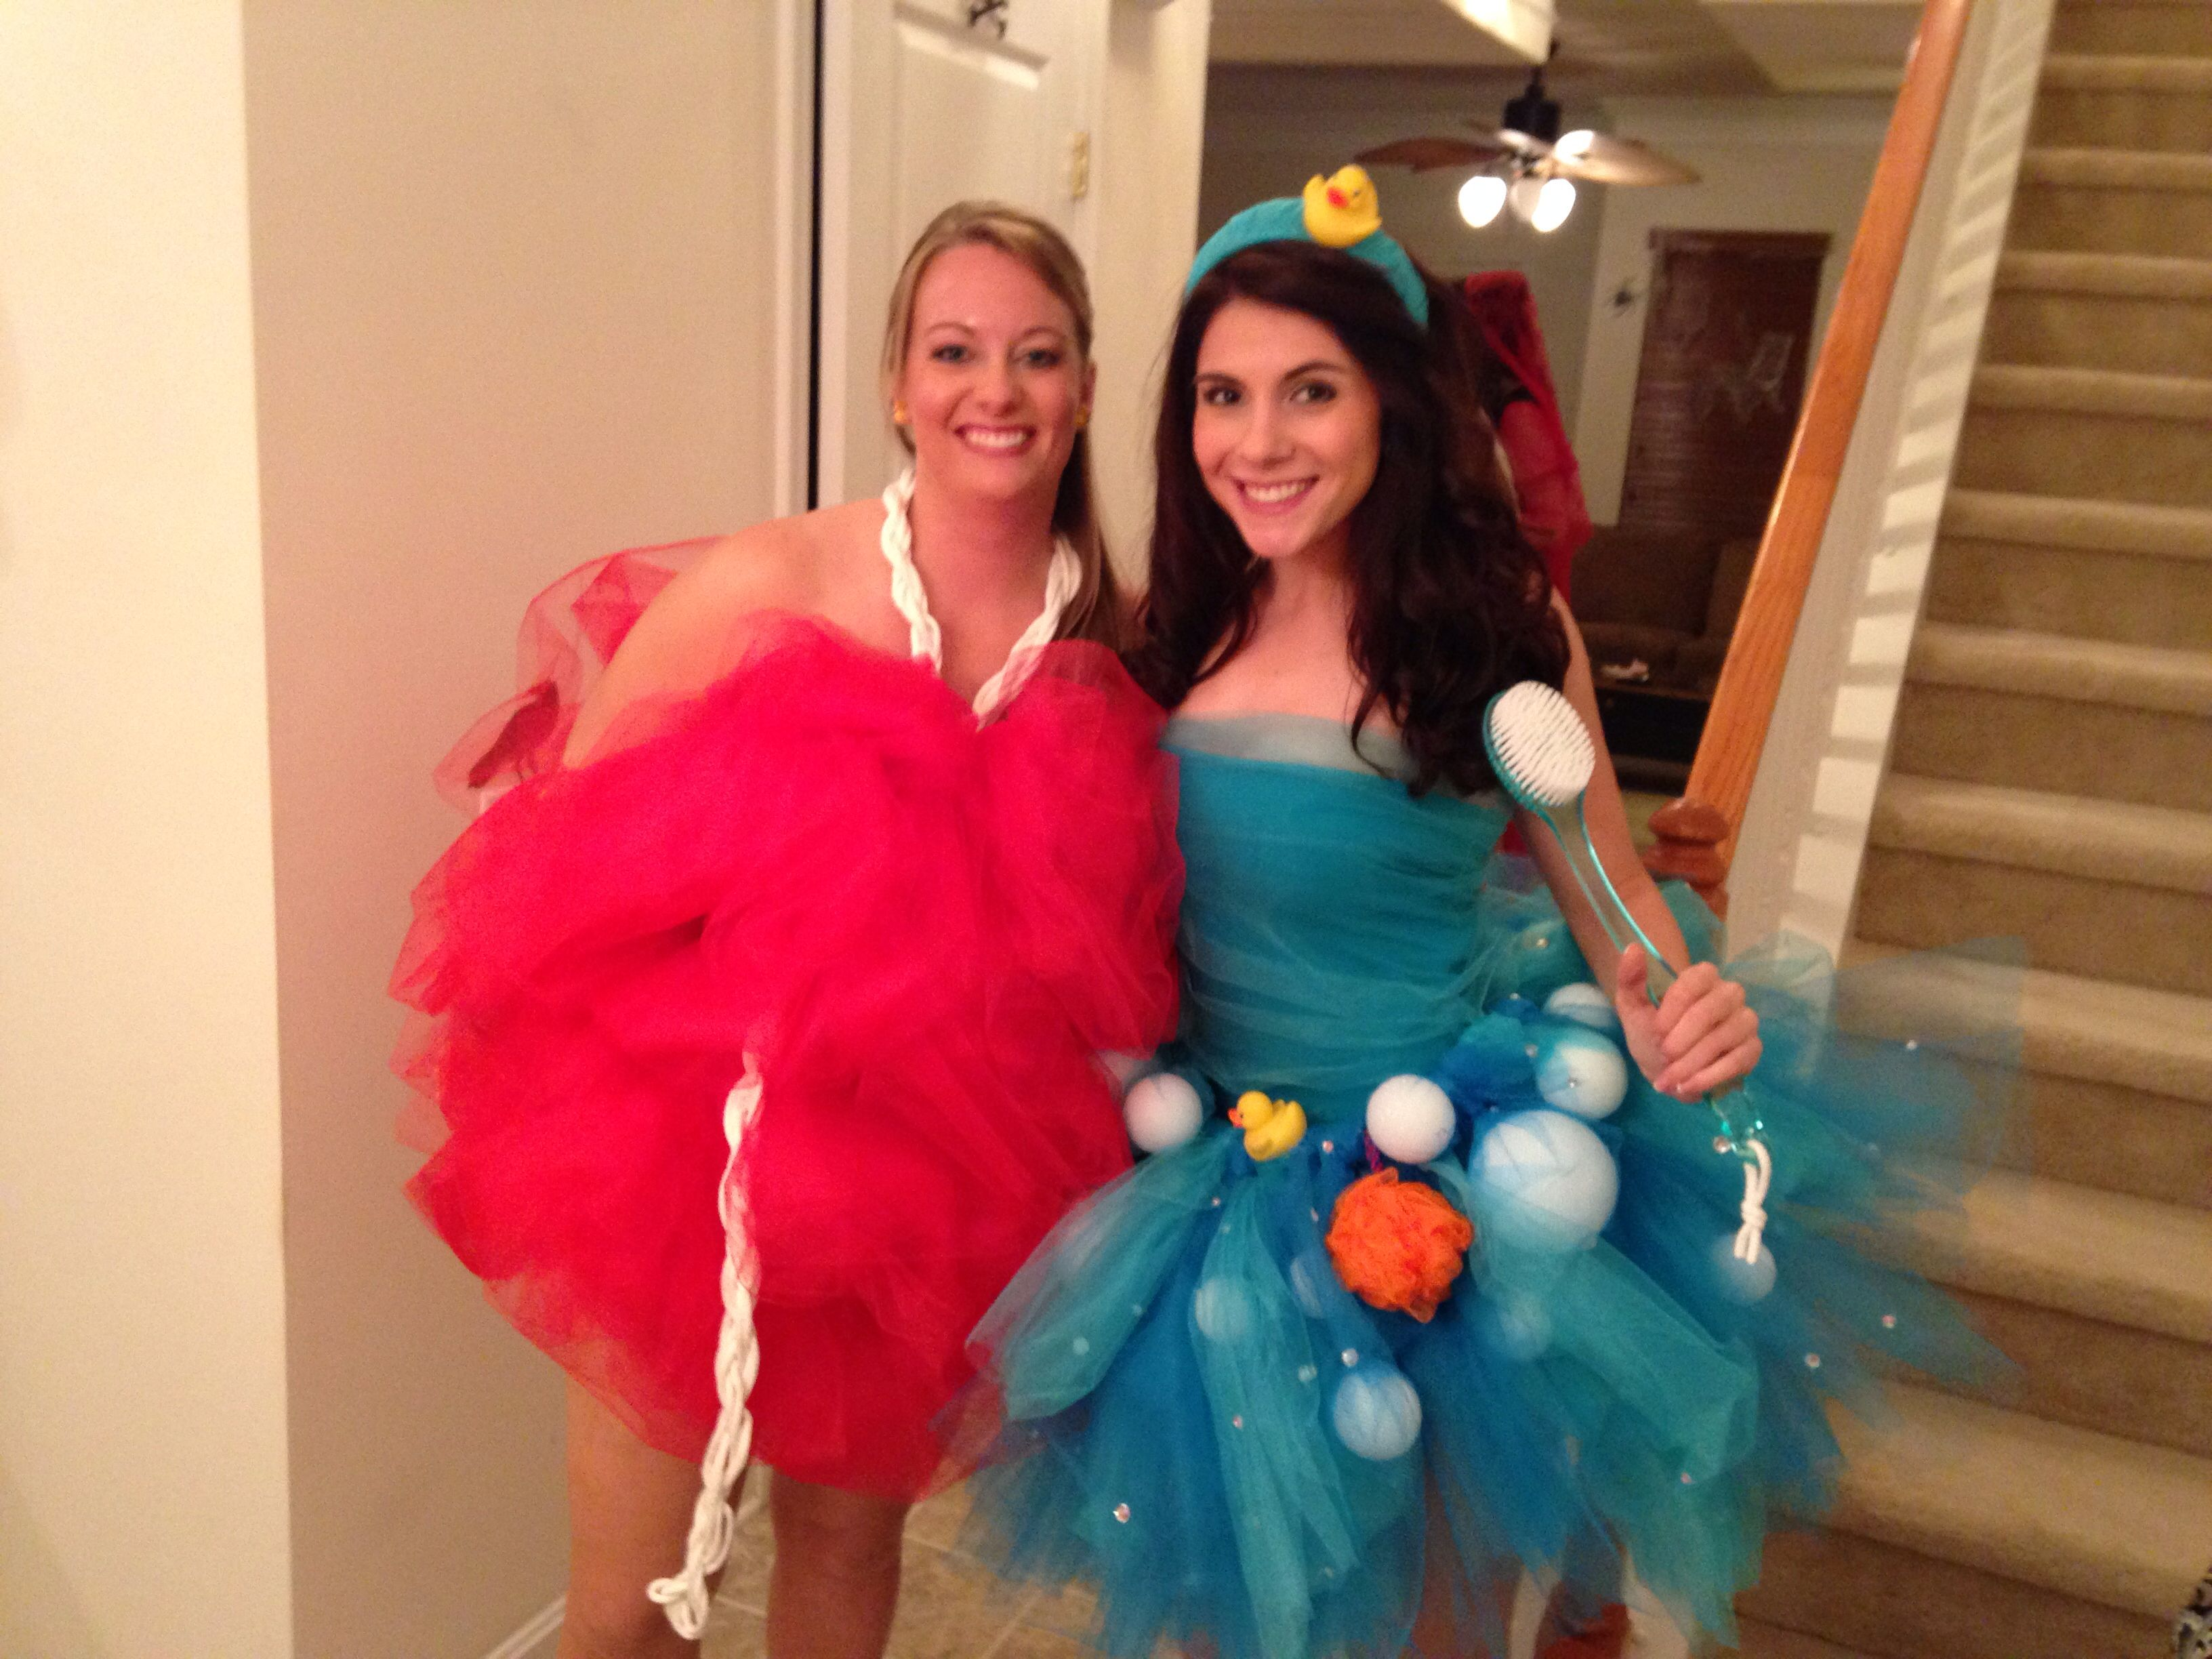 Diy halloween costumes loofa and bubble bath diy diy halloween costumes loofa and bubble bath solutioingenieria Image collections